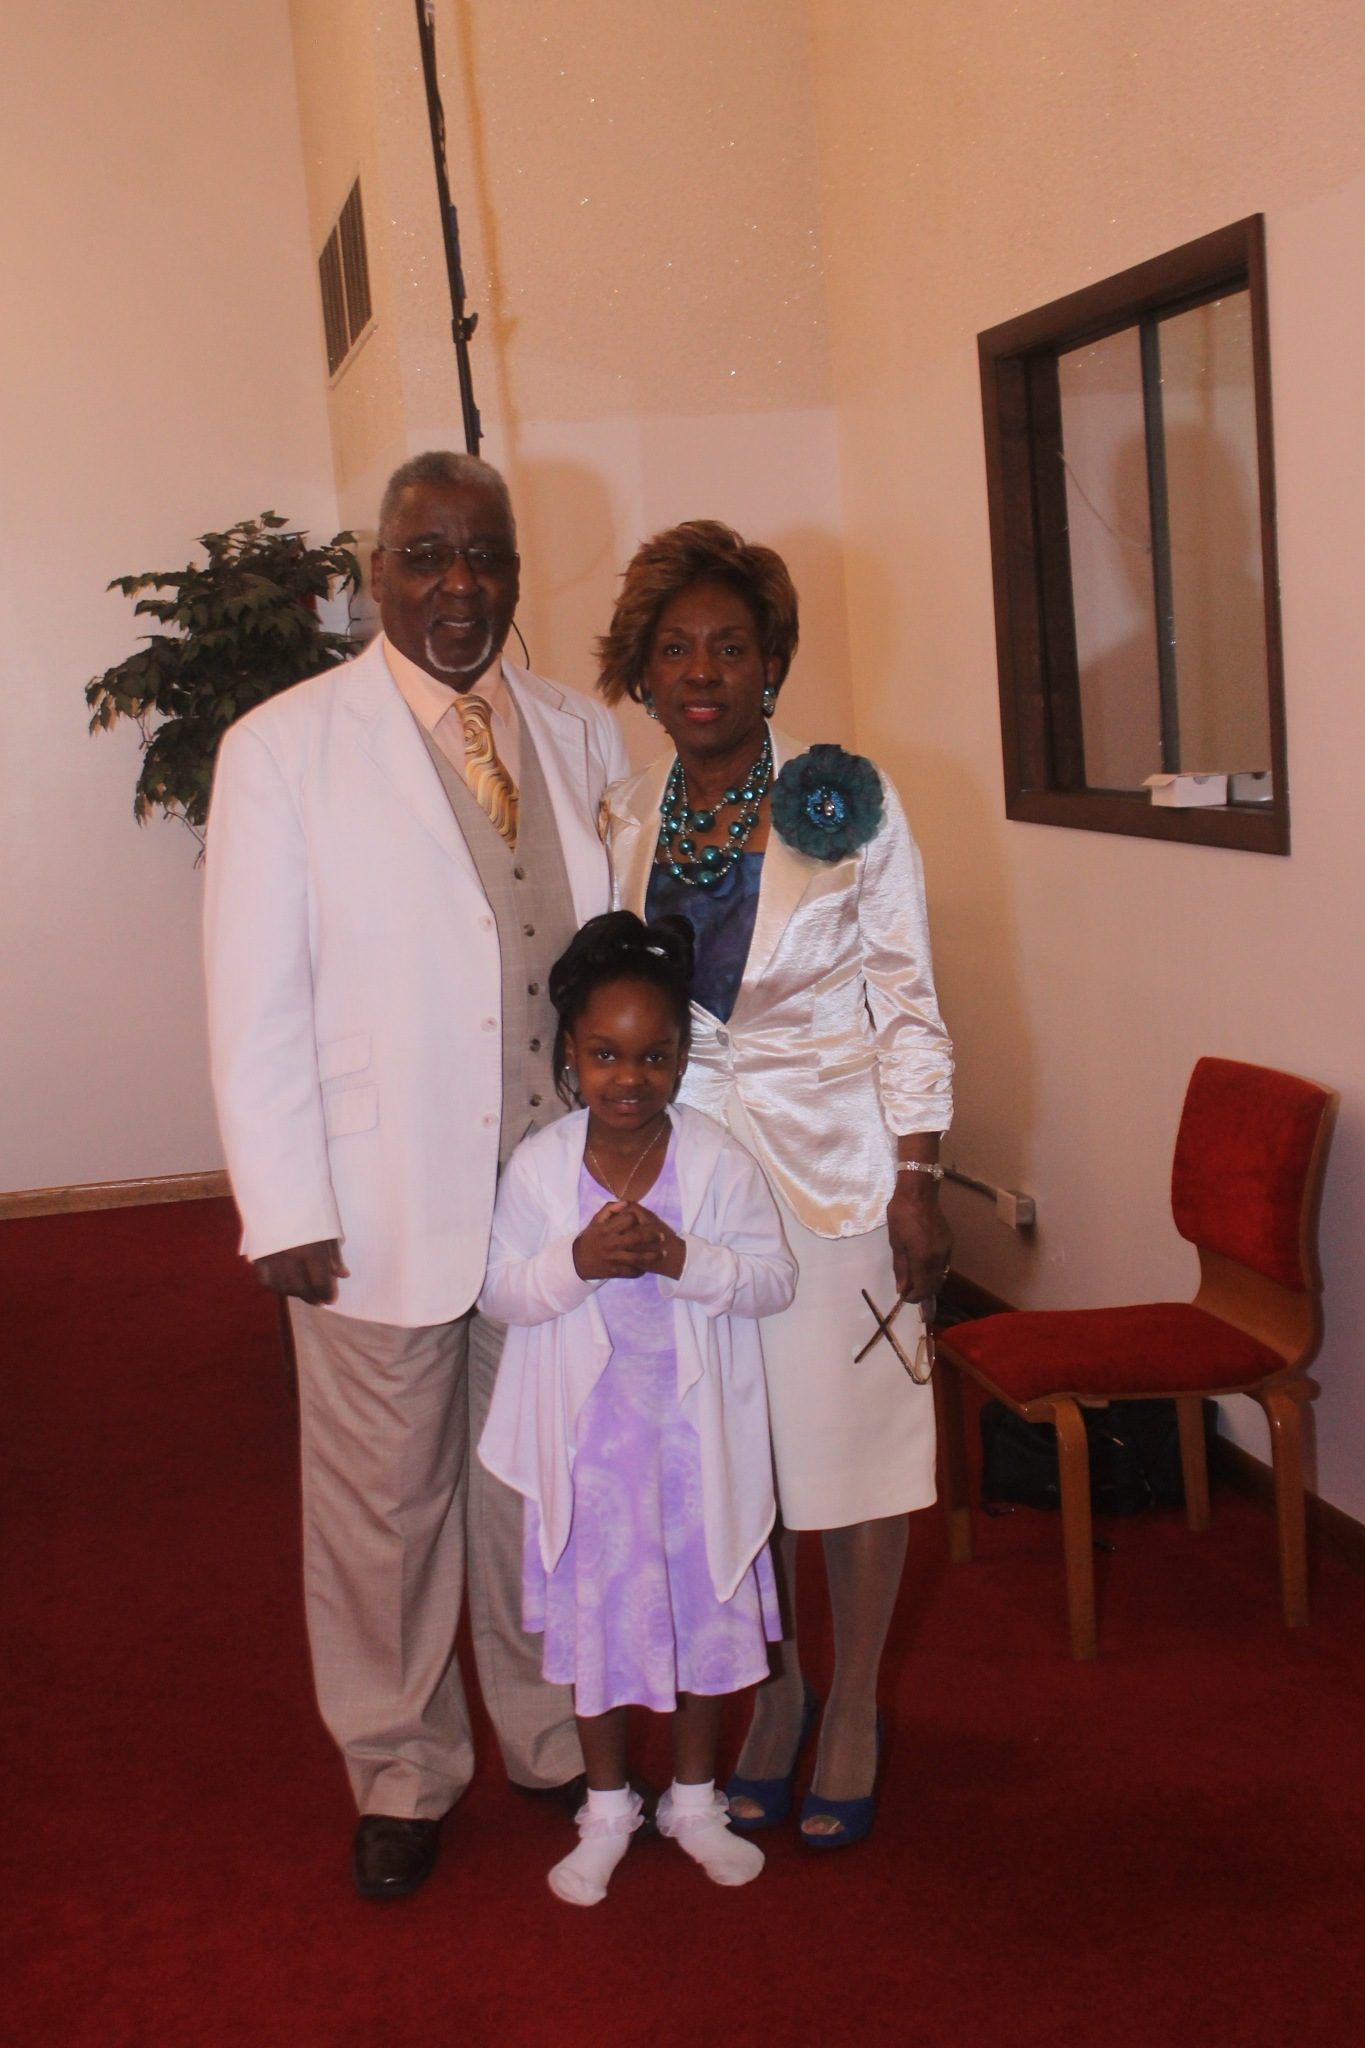 Pastor, First Lady And Granddaughter by Robert Burrell